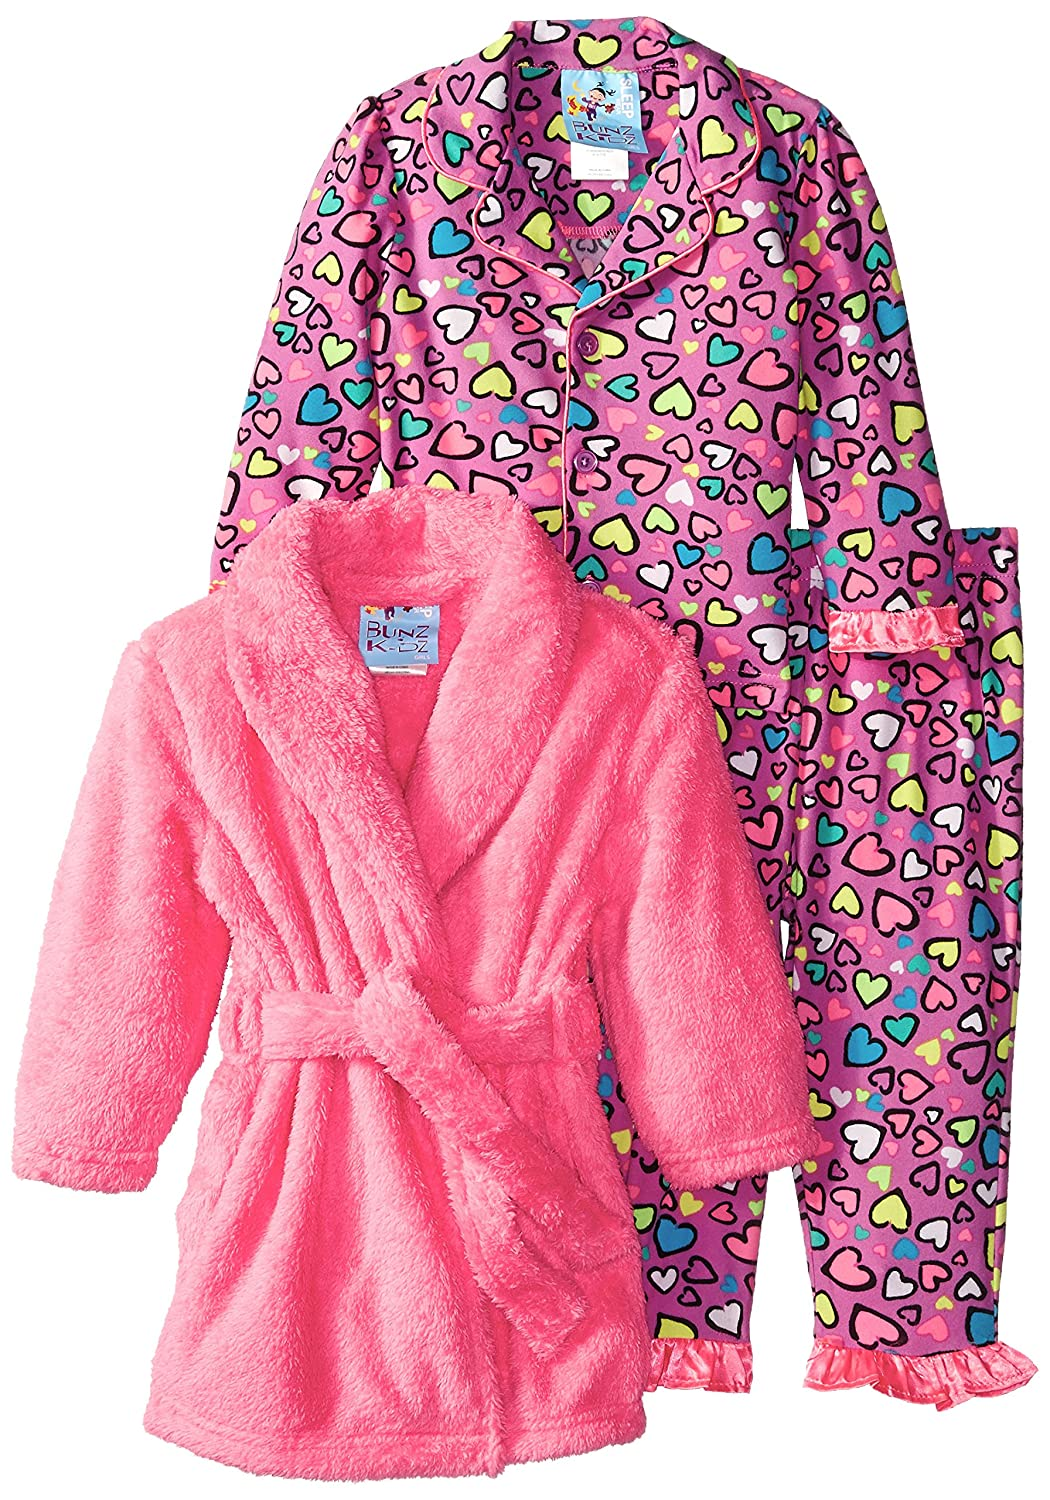 【訳あり】 Baby Bunzベビー女の子3 Piece Hearts Piece 12 Robe andパジャマセット B00VCATZ1M 12 Months ピンク B00VCATZ1M, エムールベビー&ファミリー:109bf2ab --- turtleskin-eu.access.secure-ssl-servers.info